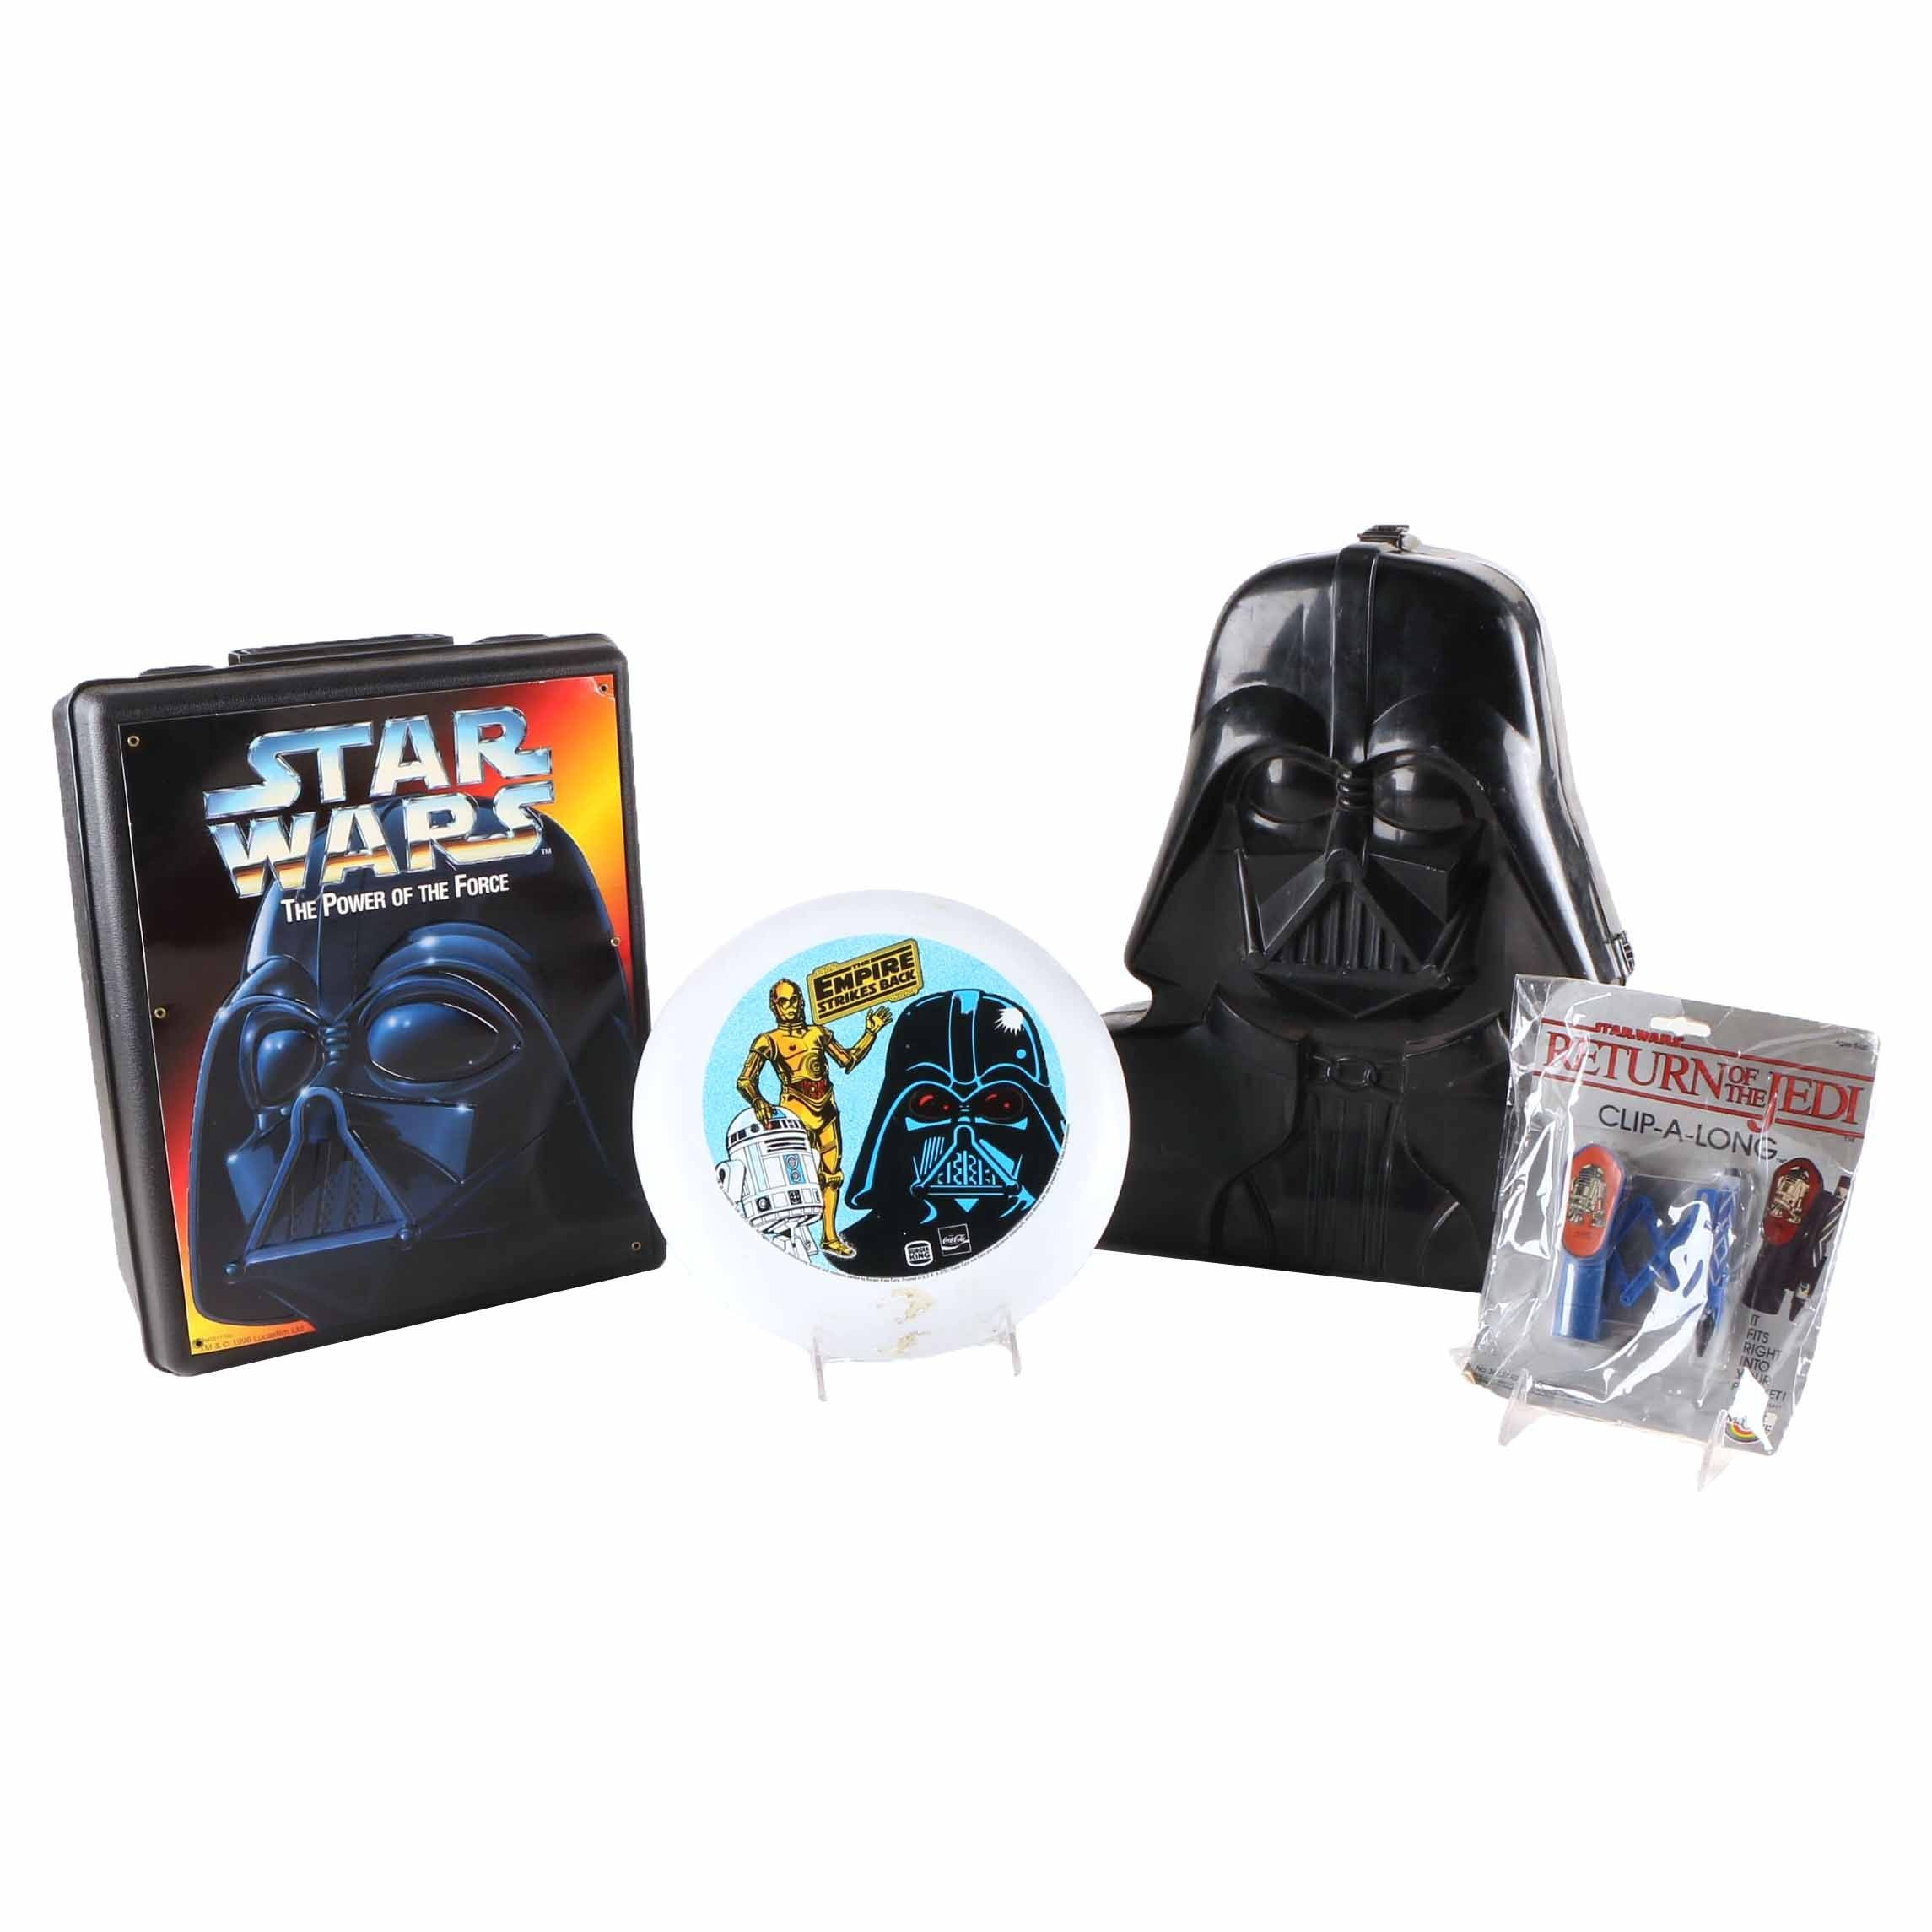 """""""Darth Vader"""" Action Figure Storage Cases and Other """"Star Wars"""" Memorabilia"""